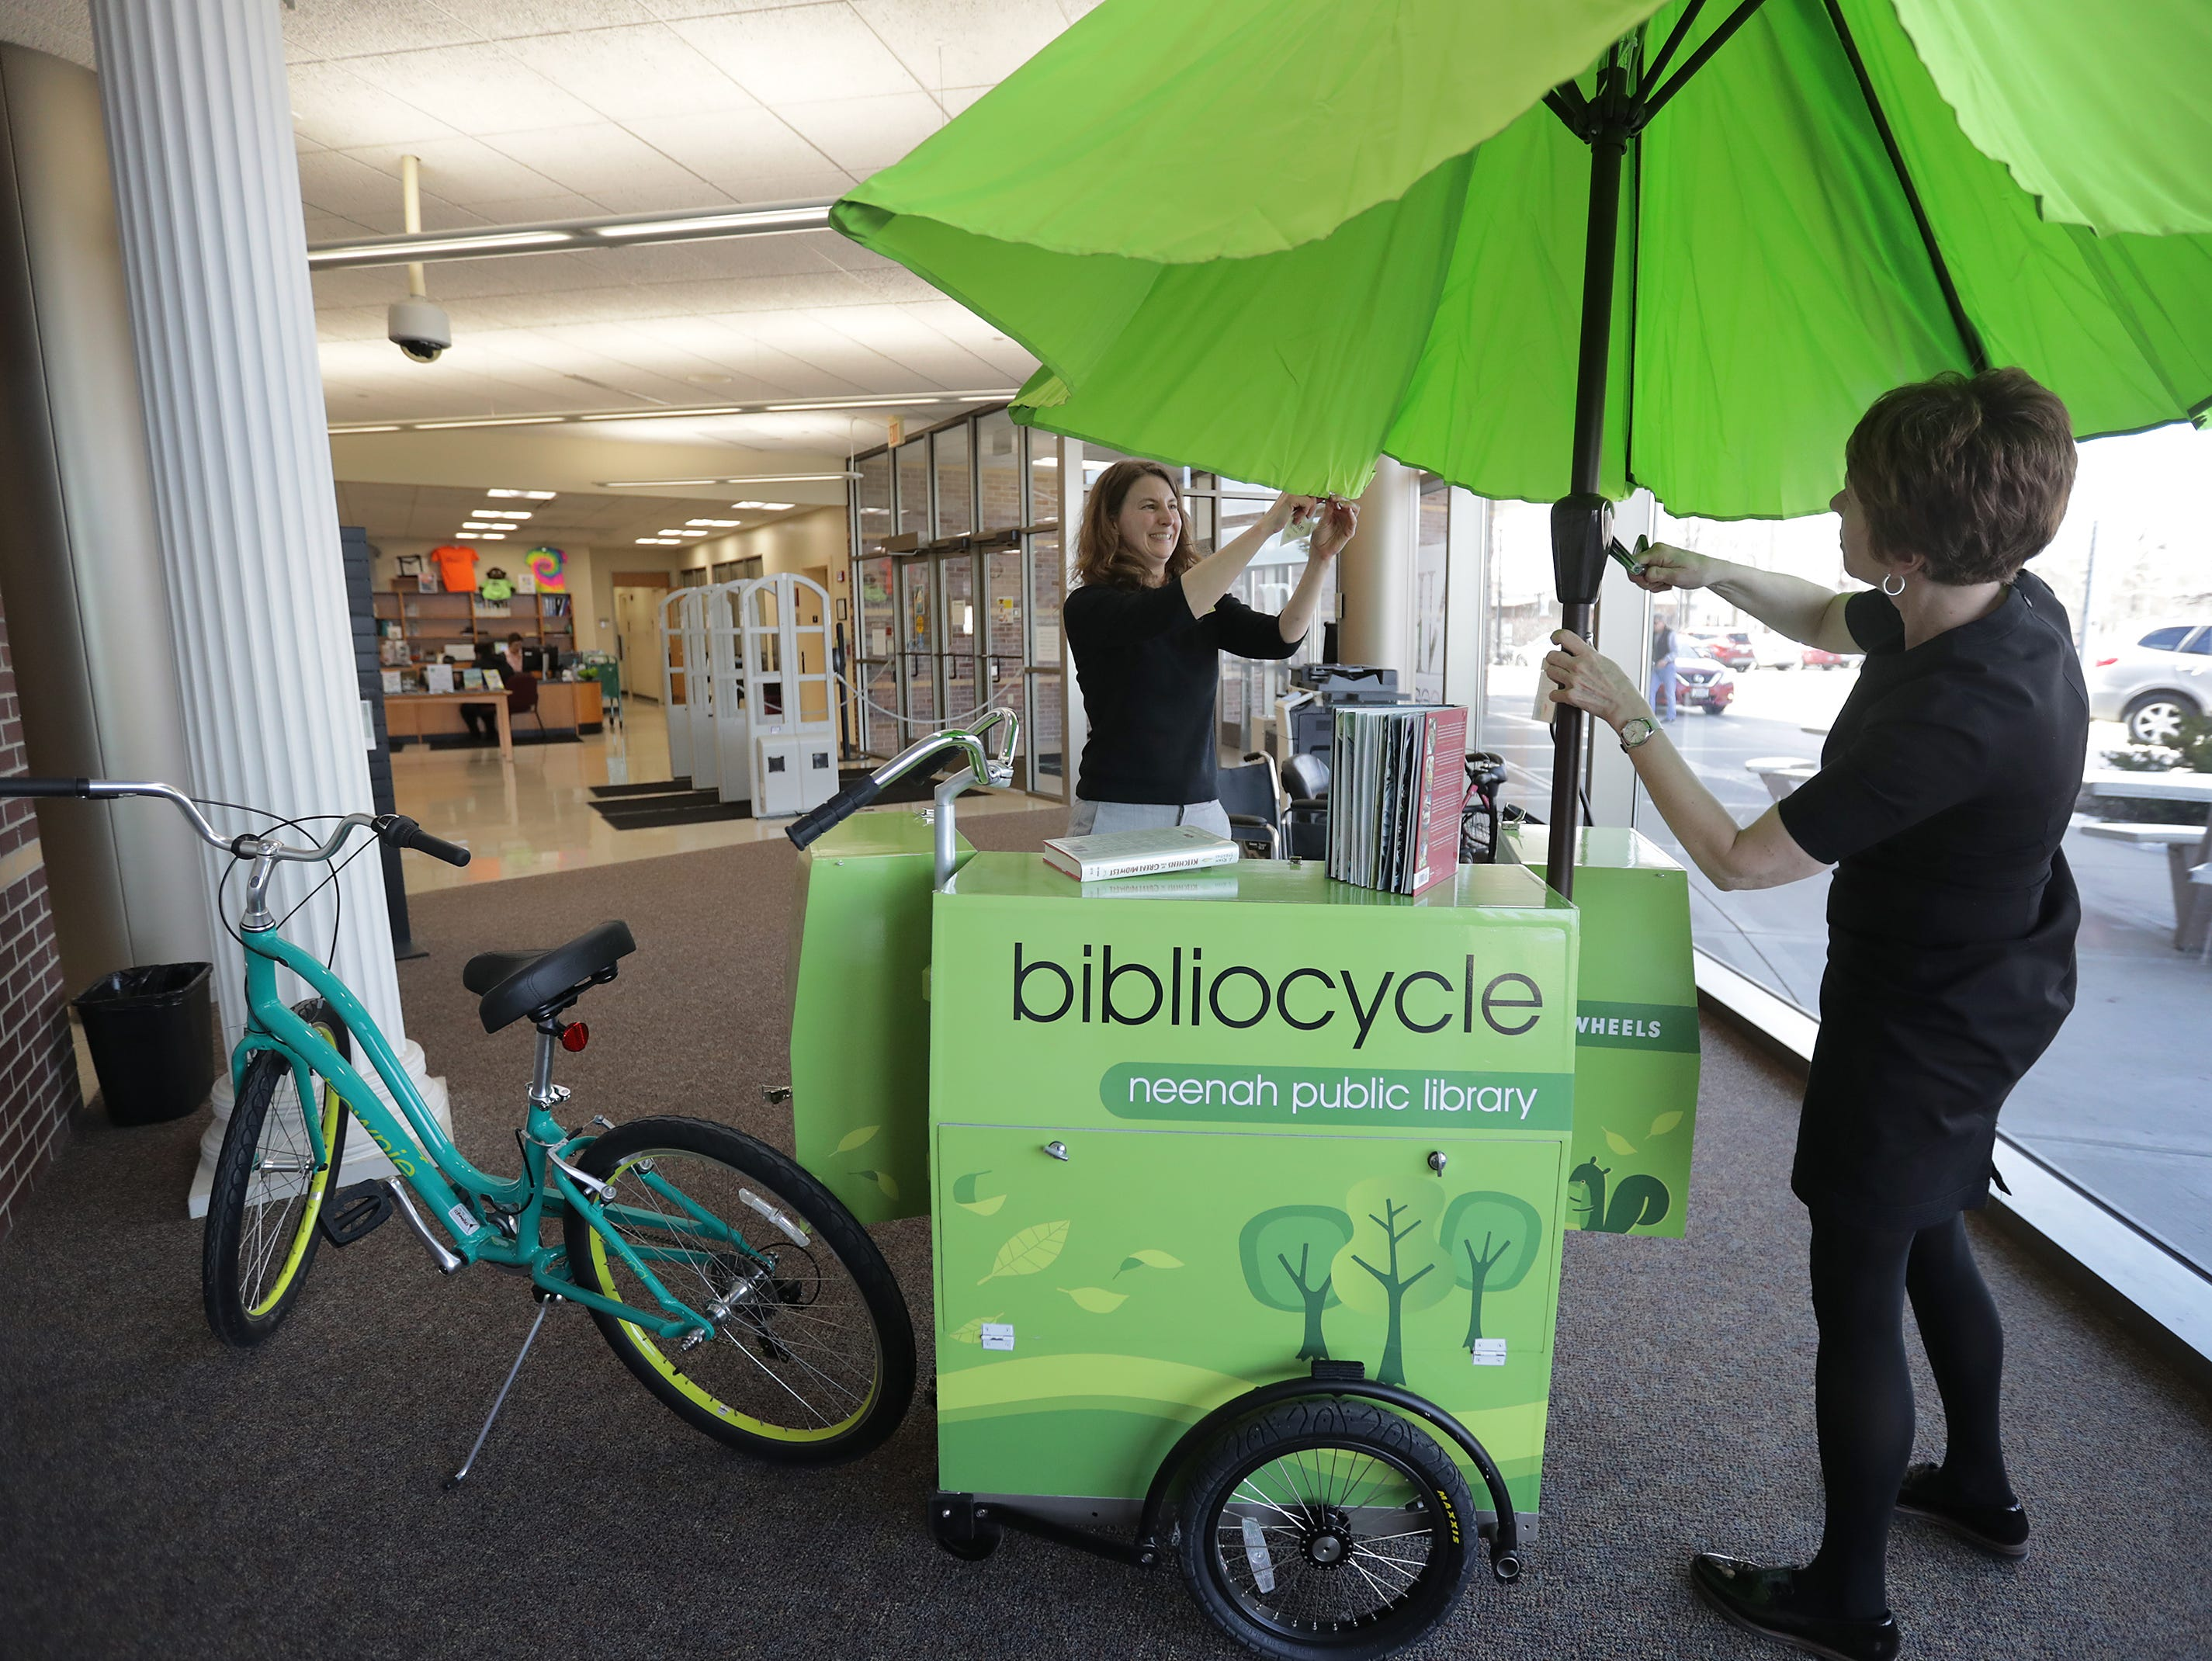 Library Director Gretchen Raab, right, and assistant library director Nicole Hardina-Wilhelmand sets up a display featuring the Neenah Public Library Bibliocycle on Wednesday, April 3, 2019, in Neenah, Wis. It's a bicycle with a cart containing books, and it functions as mobile mini library. Staff will take it to apartments and parks, as weather permits, allowing patrons to check out materials on the spot.Wm. Glasheen/USA TODAY NETWORK-Wisconsin.